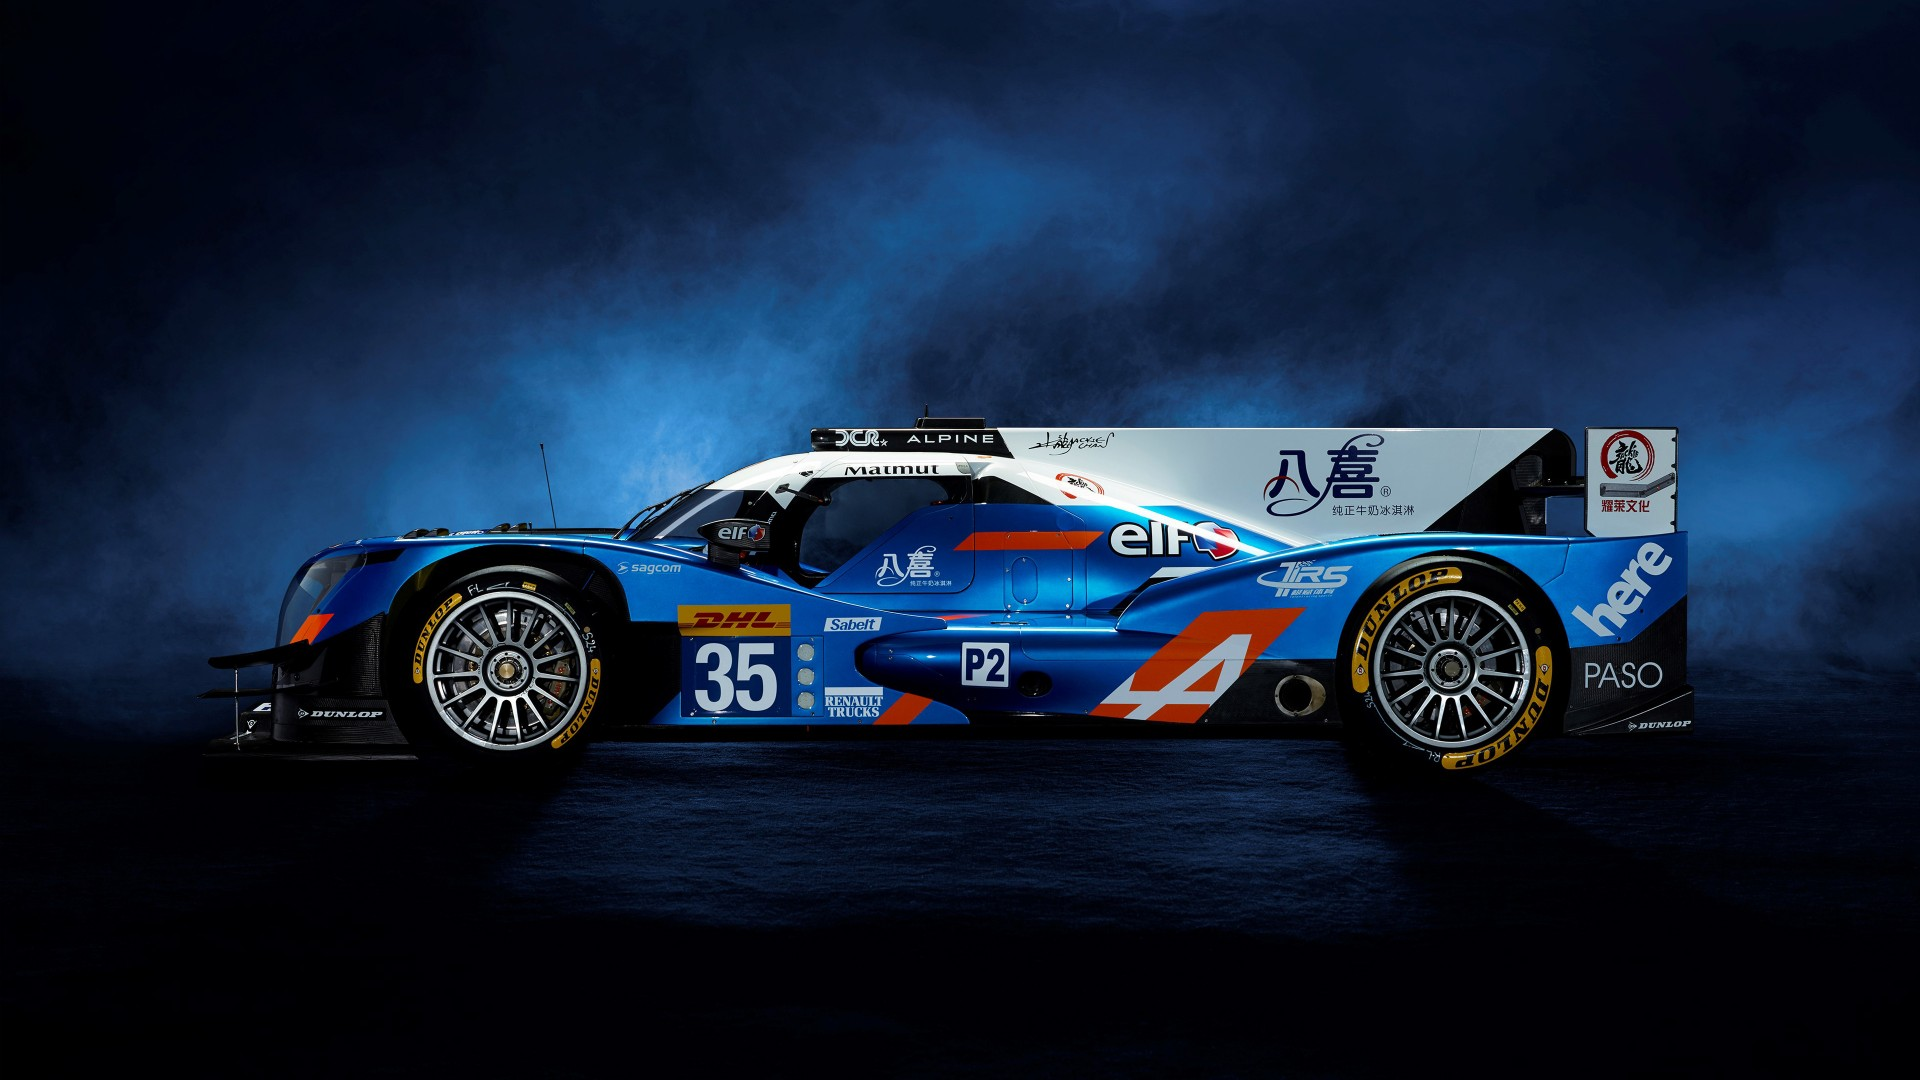 Supar Car Hd Wallpaper Alpine A460 Race Car 4k Wallpaper Hd Car Wallpapers Id